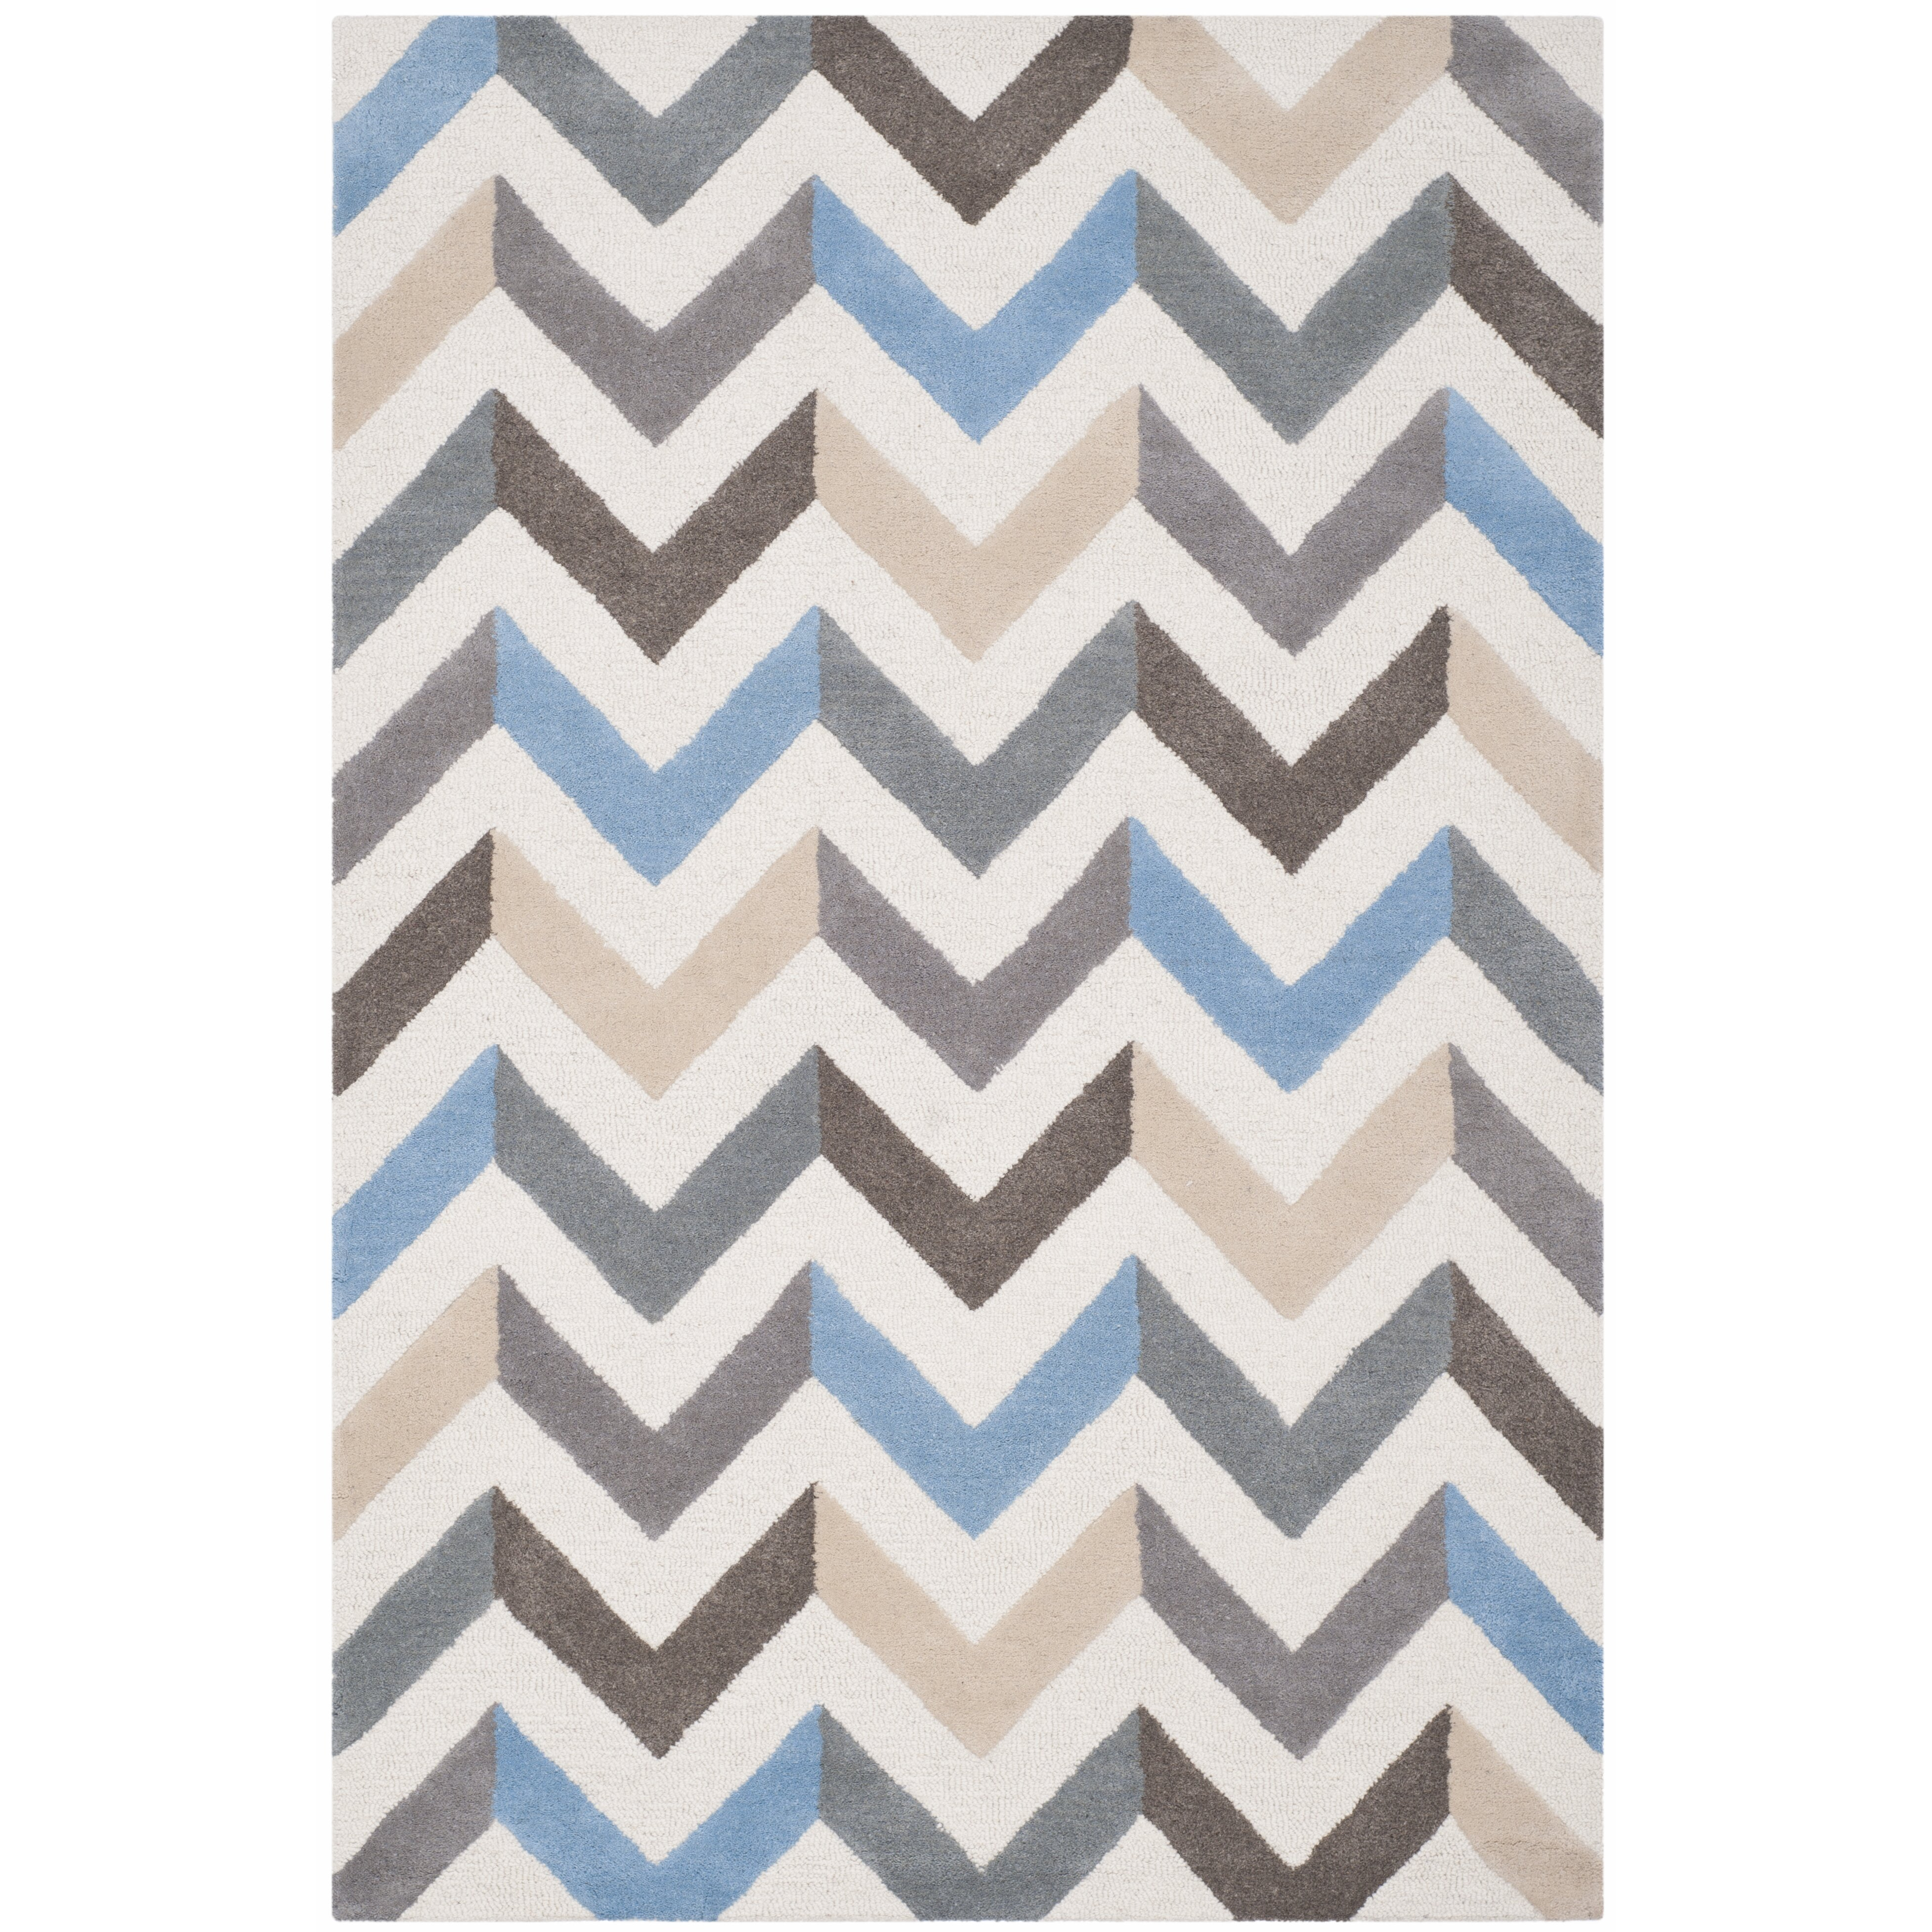 Chevron Living Room Rug qvitterus